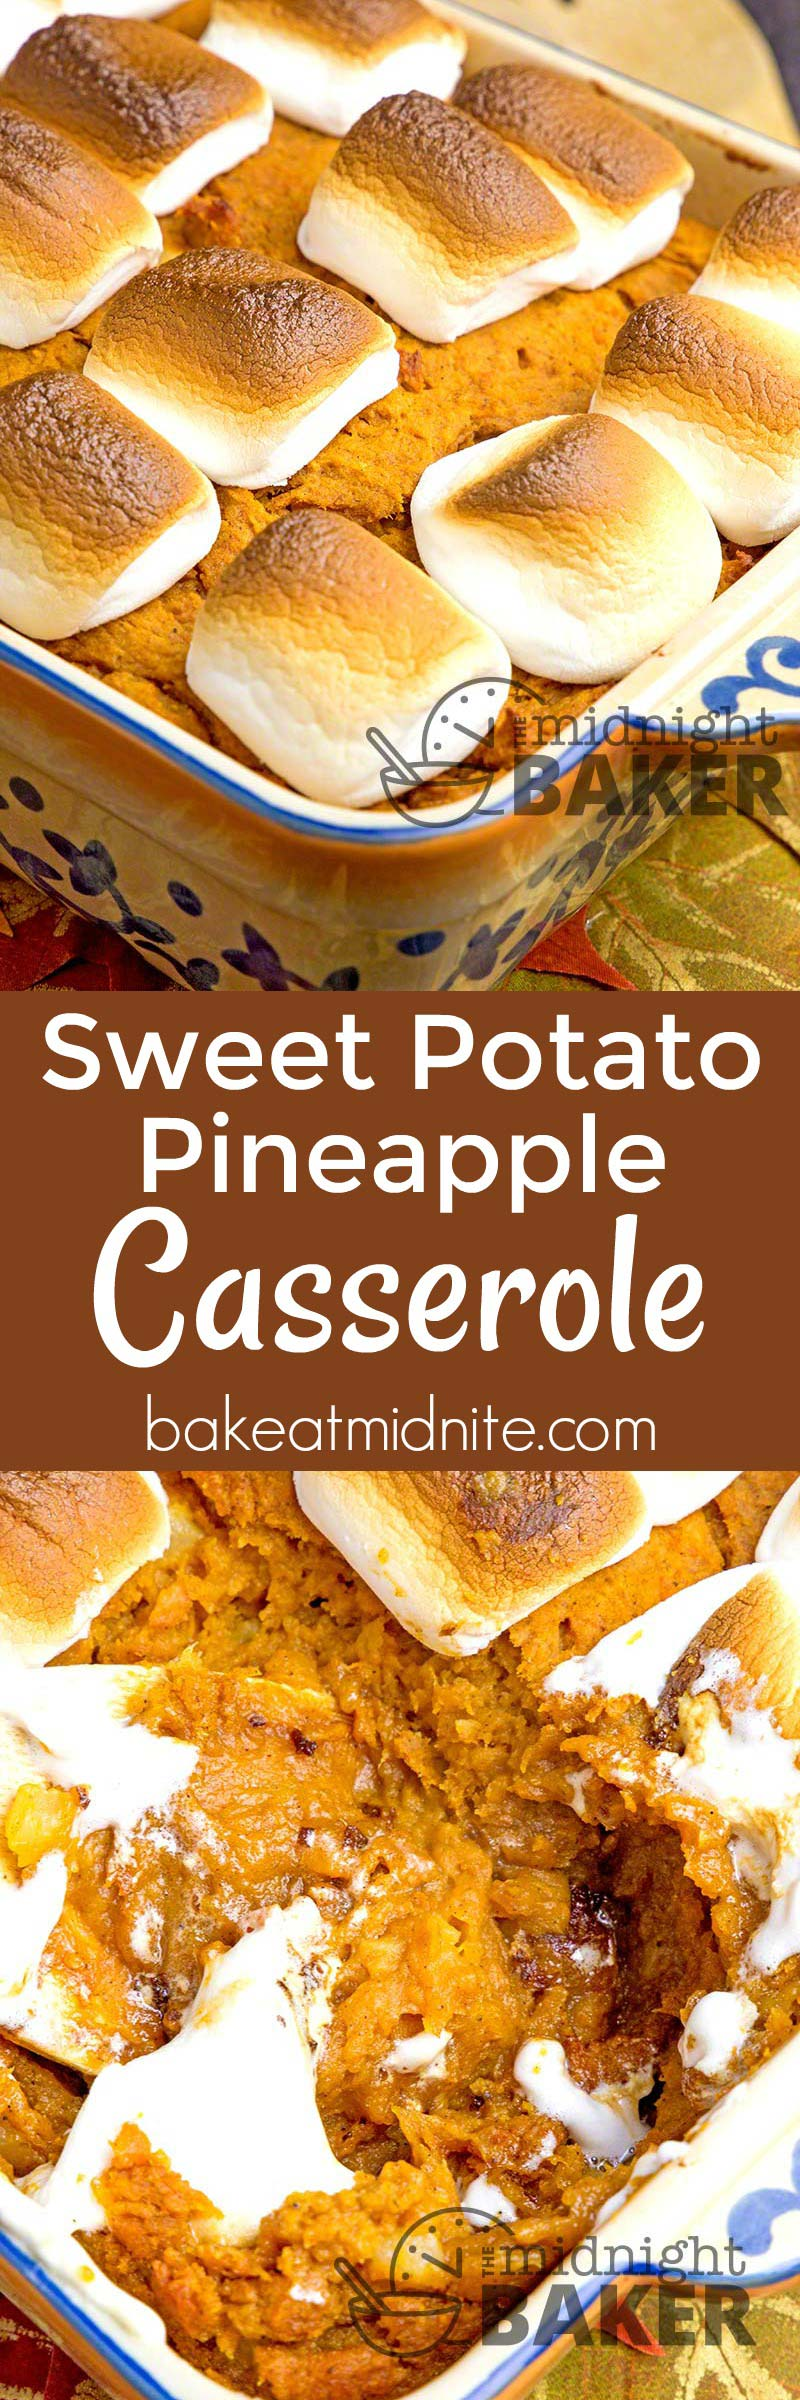 recipe: pineapple casserole recipe [29]